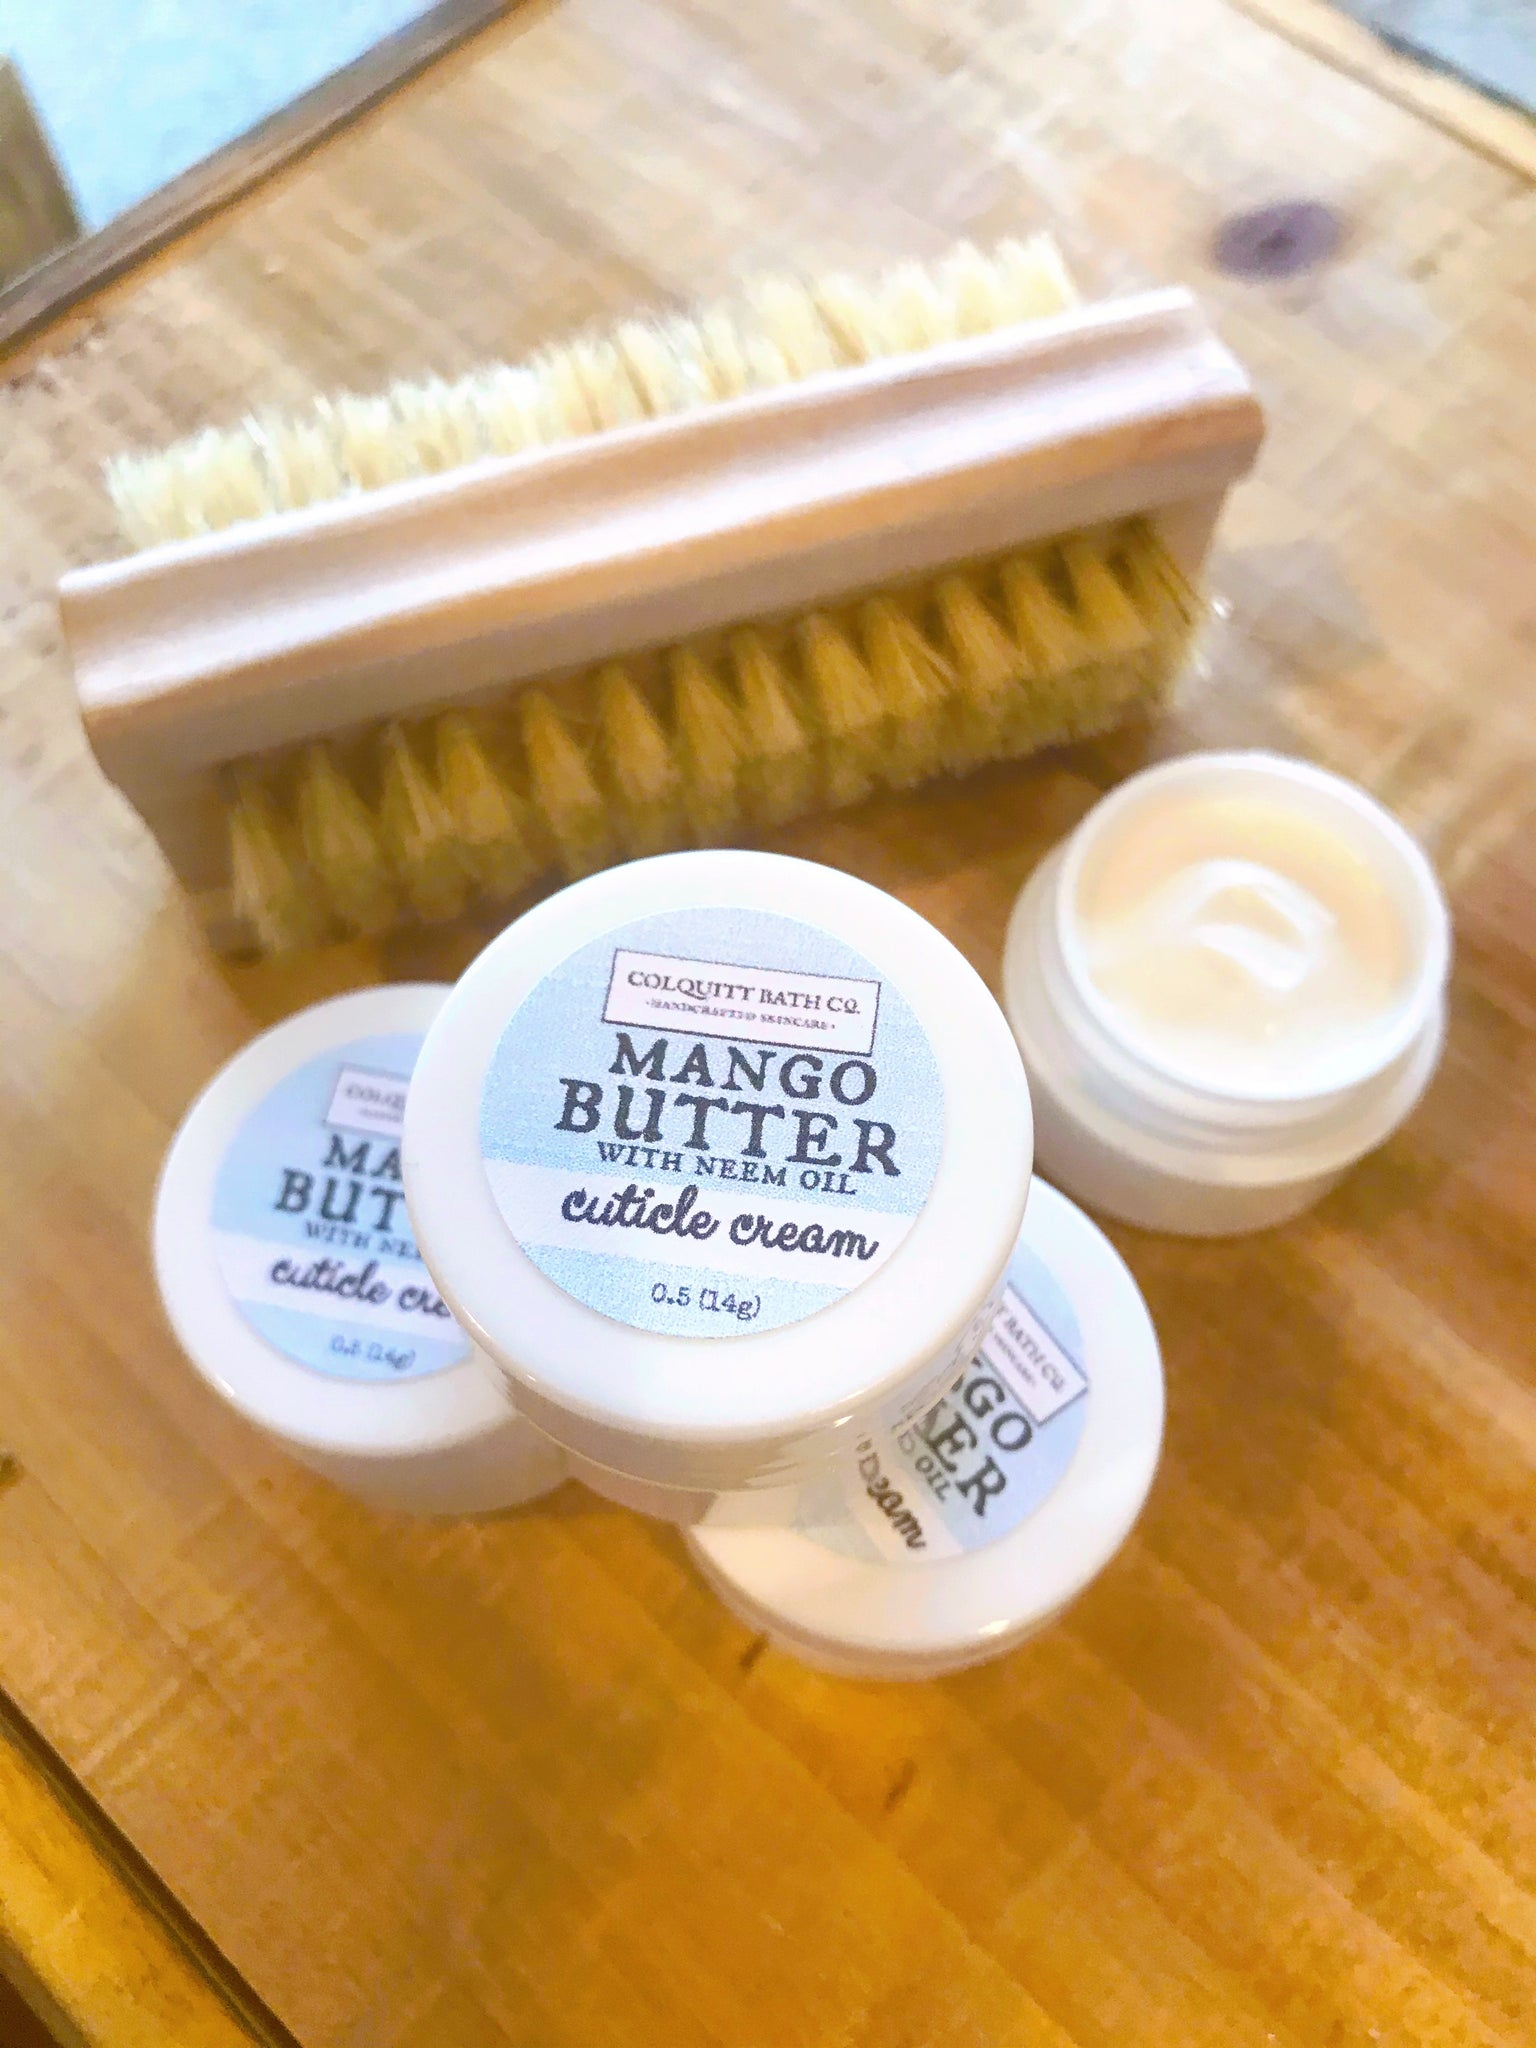 Mango Butter Cuticle Cream .5 oz